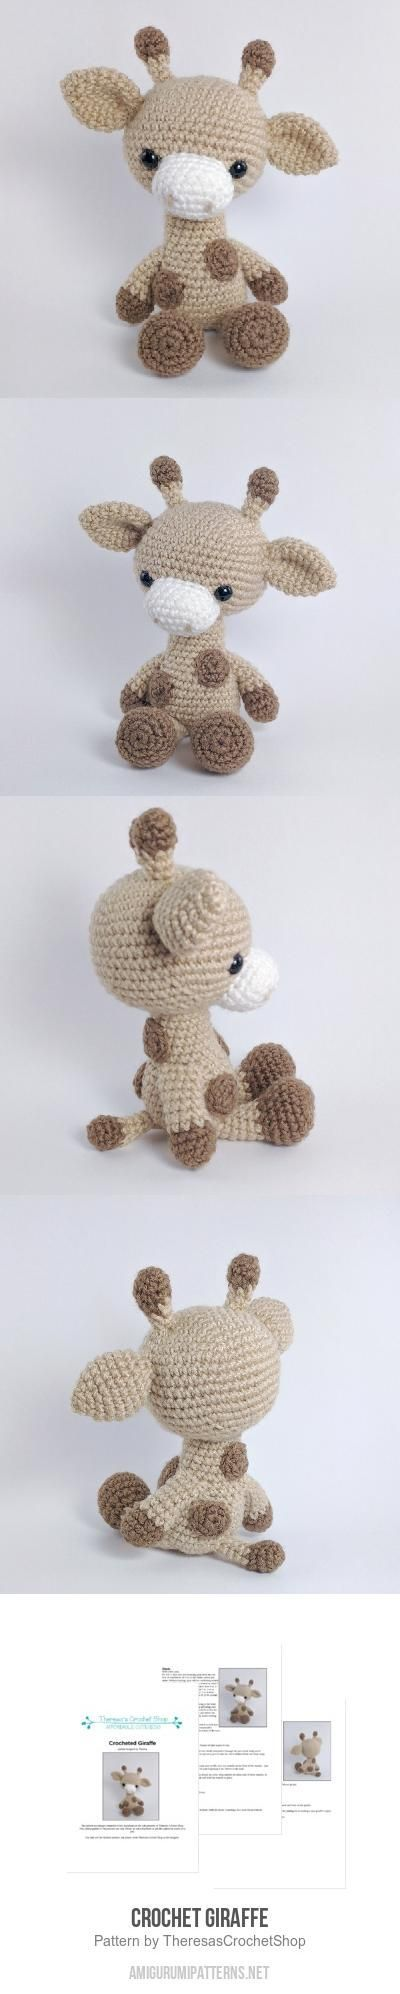 Tendance & idée Bracelets 2016/2017 Description Crochet Giraffe Amigurumi Pattern More